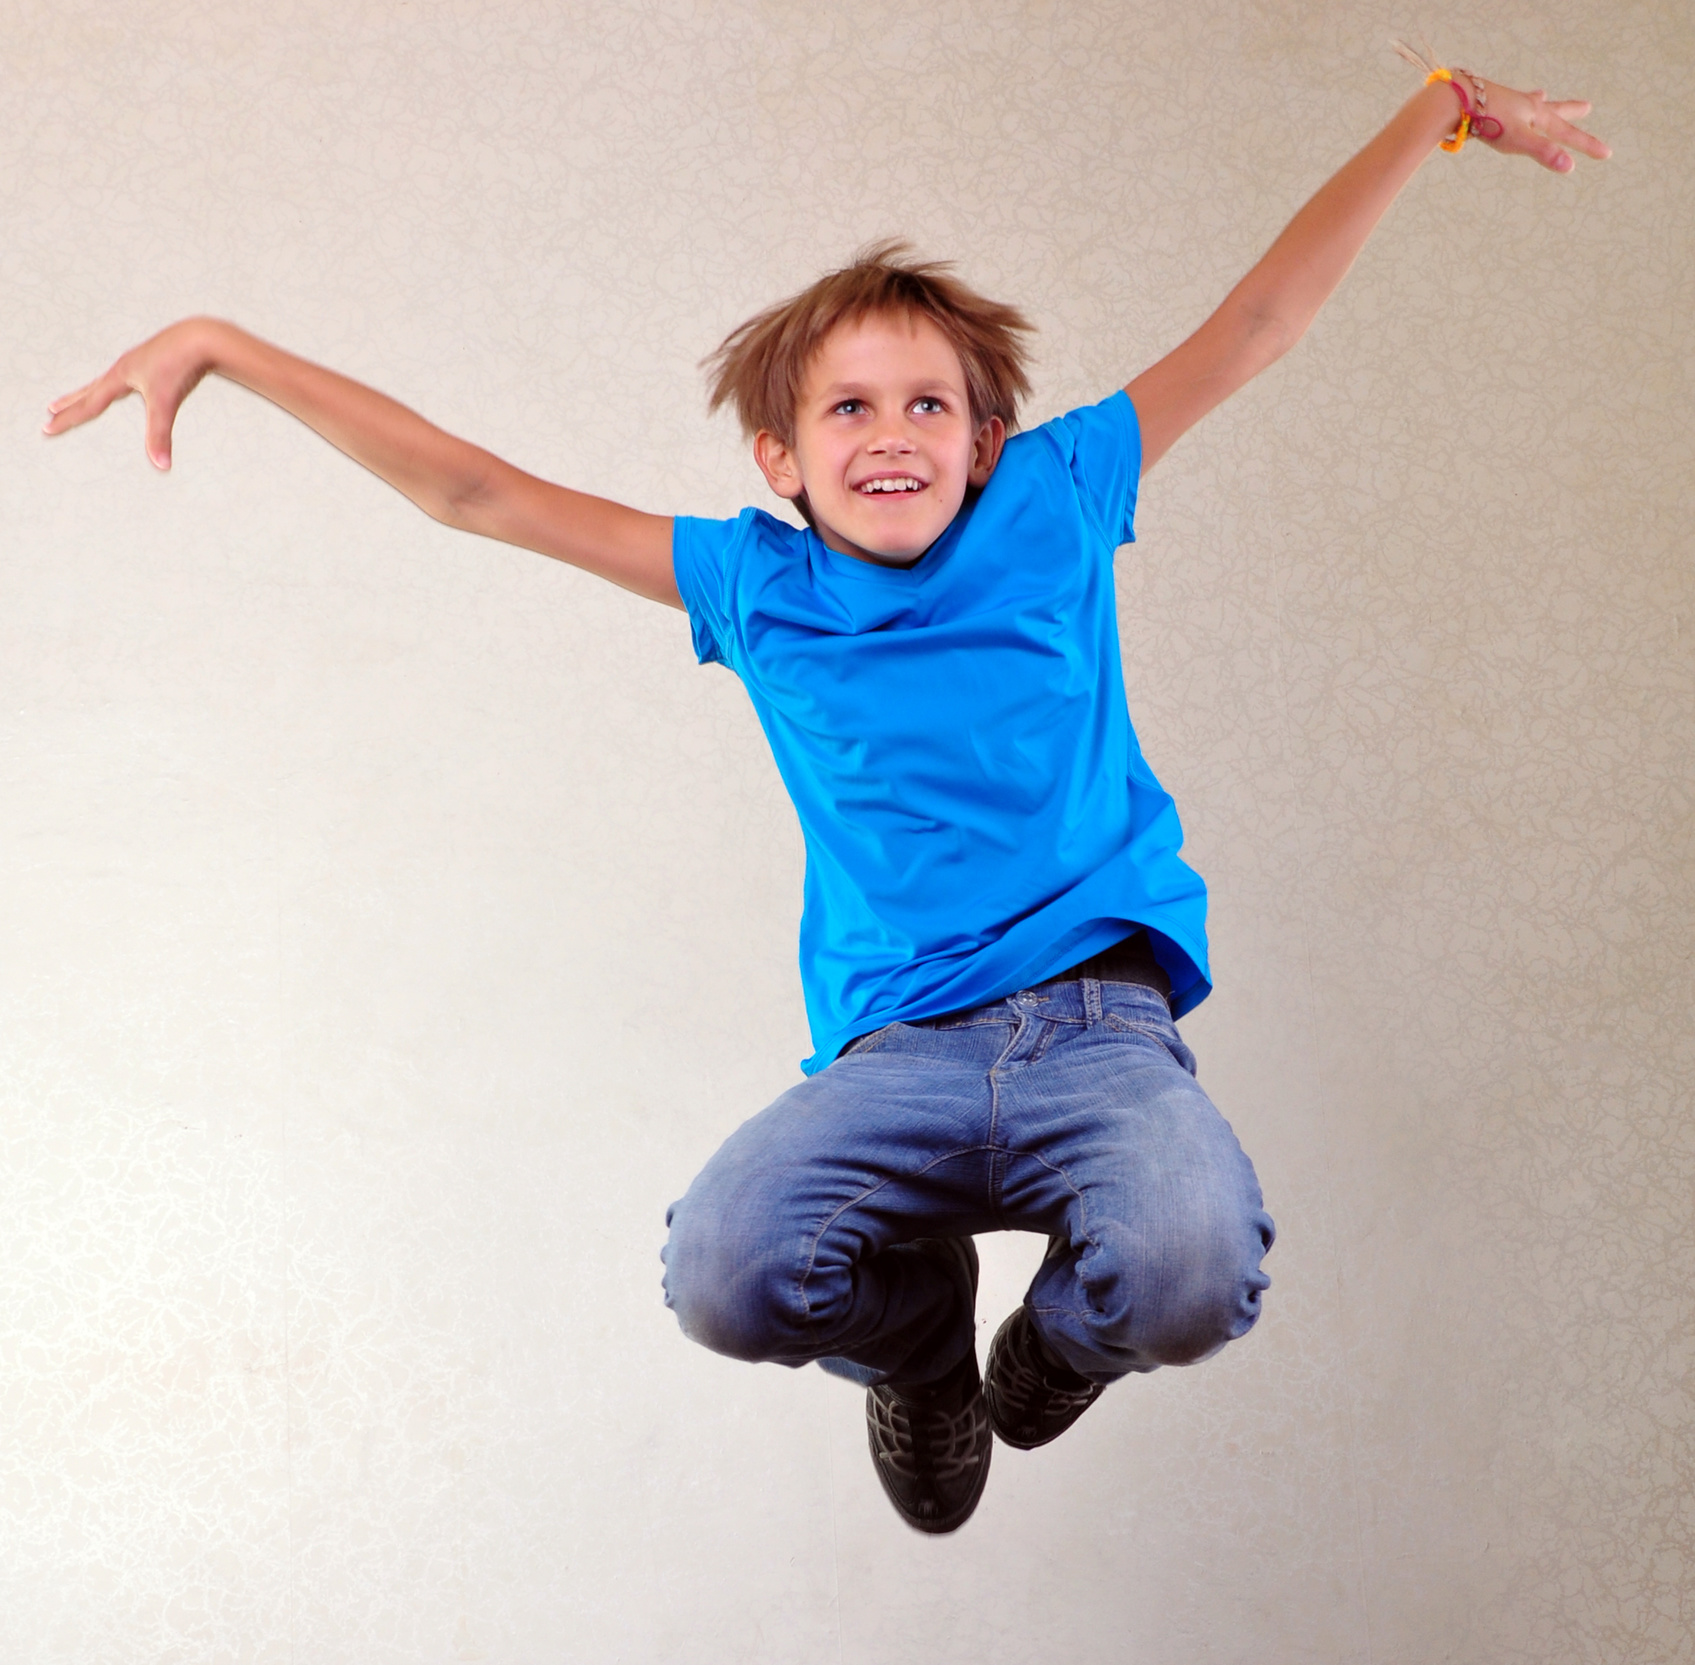 047504769-portrait-child-jumping-and-dan.jpeg